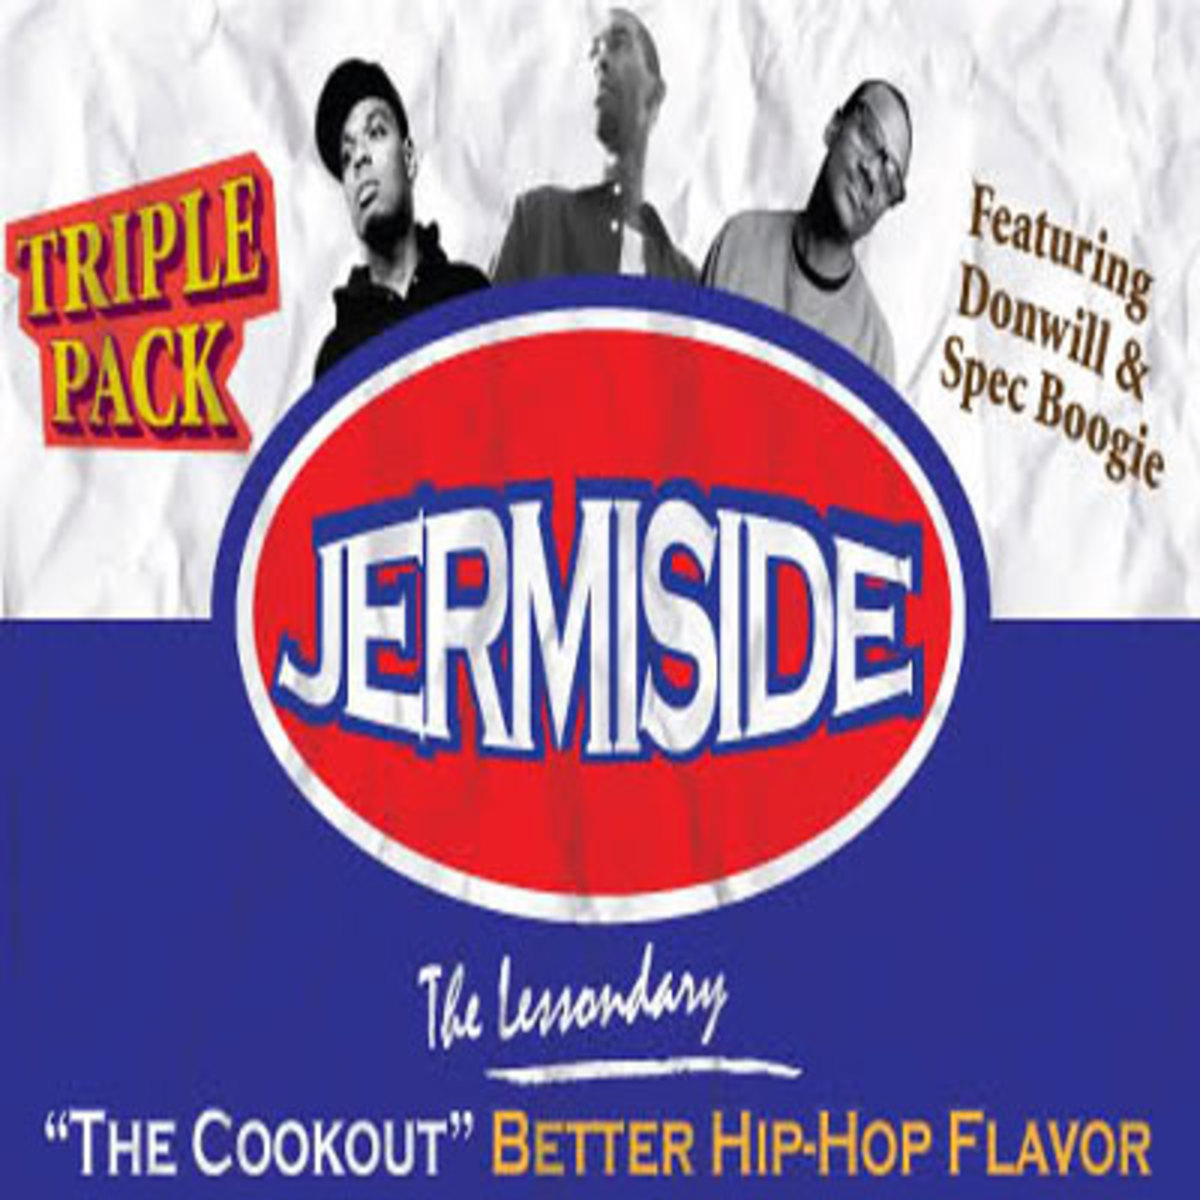 jermiside-thecookout.jpg